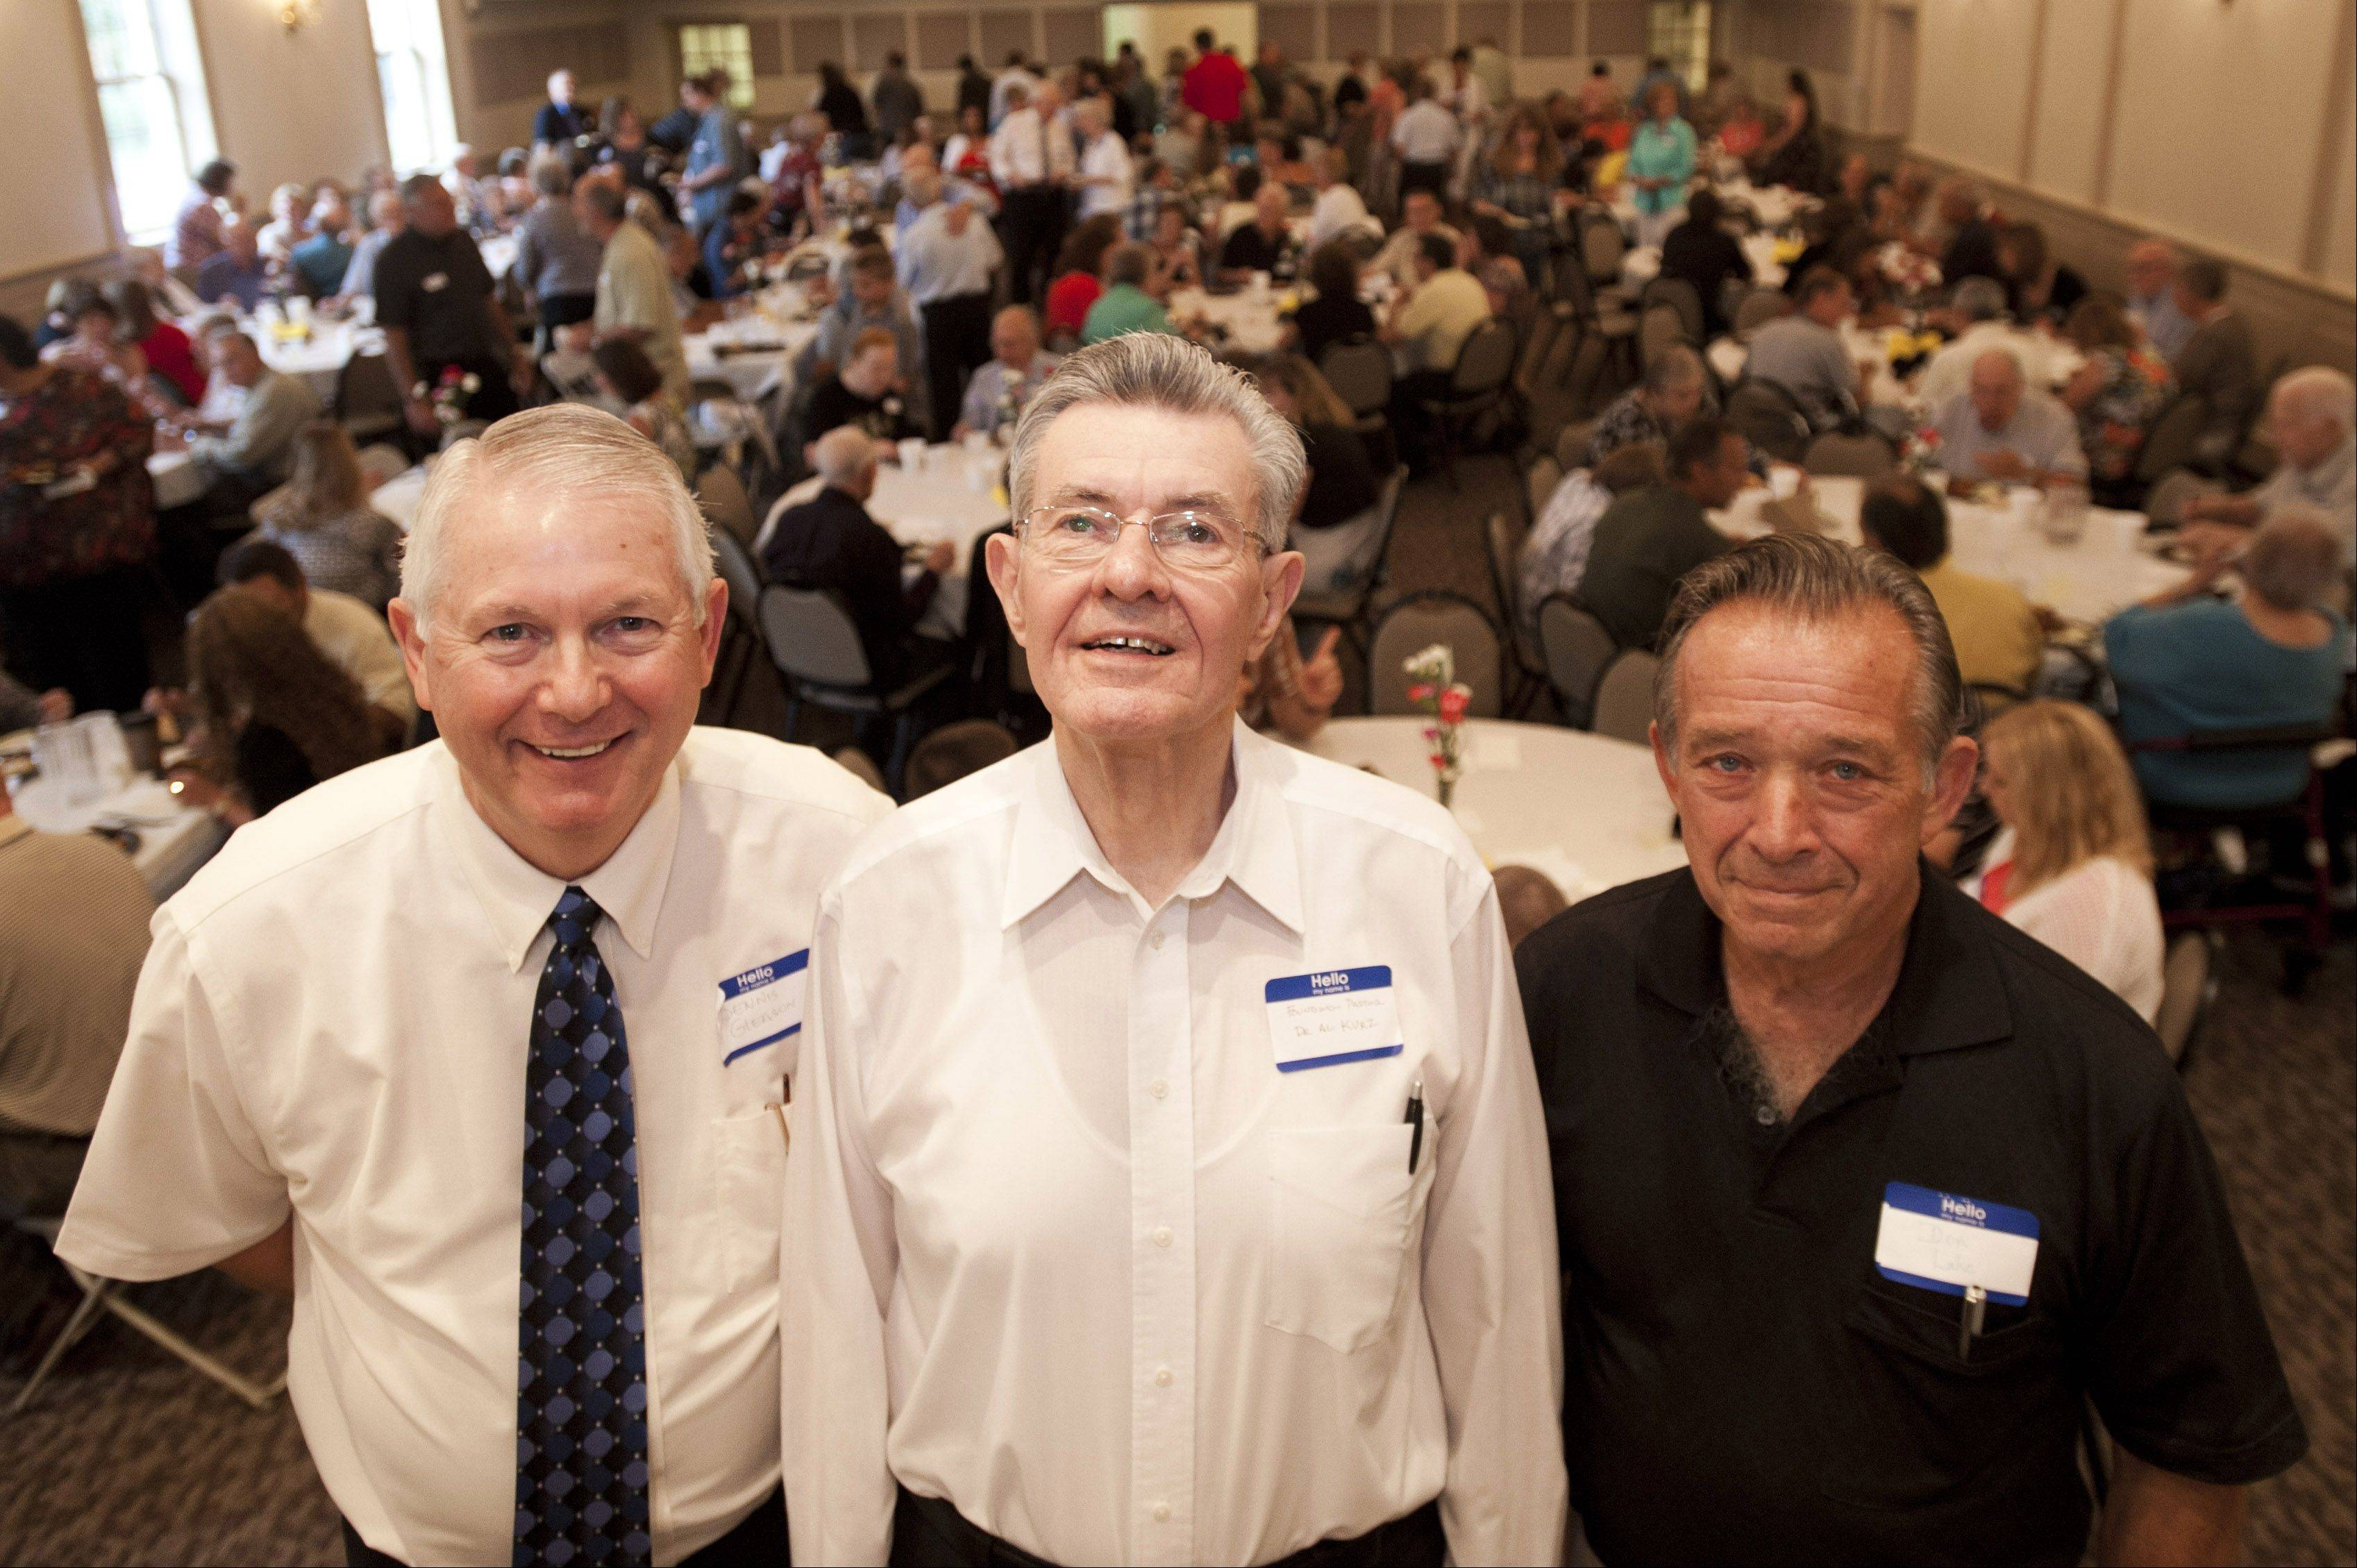 Former pastors of the Addison Bible Church, Dennis Gleason, Al Kurz and Don Lake, gather with more than 200 members for a reunion Sunday in Medinah.